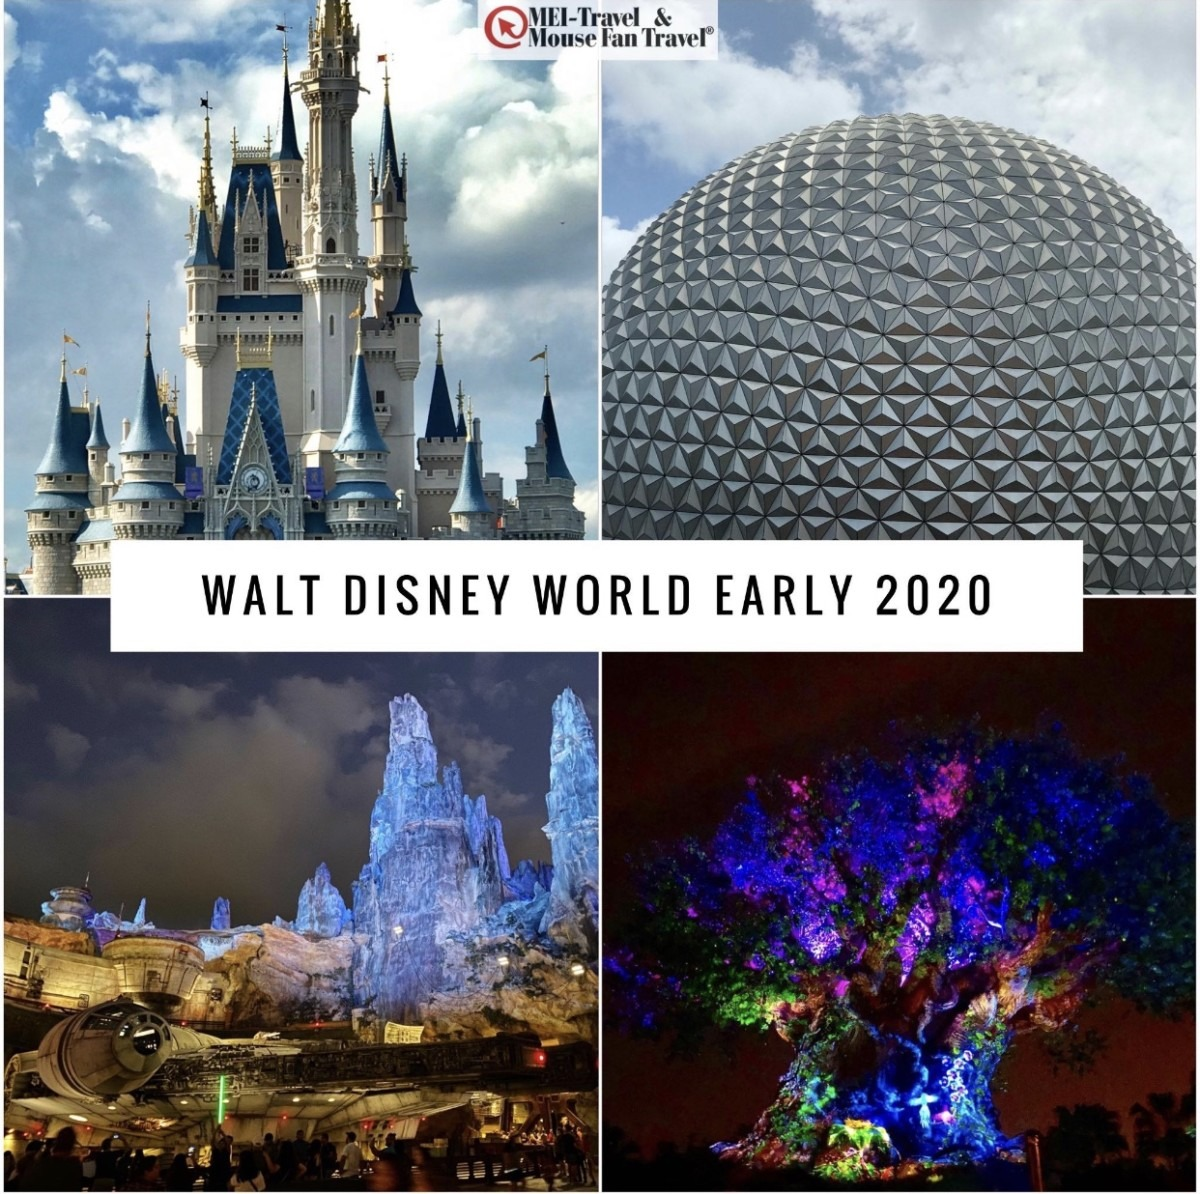 Walt Disney World Early 2020 Offers are Here! 1